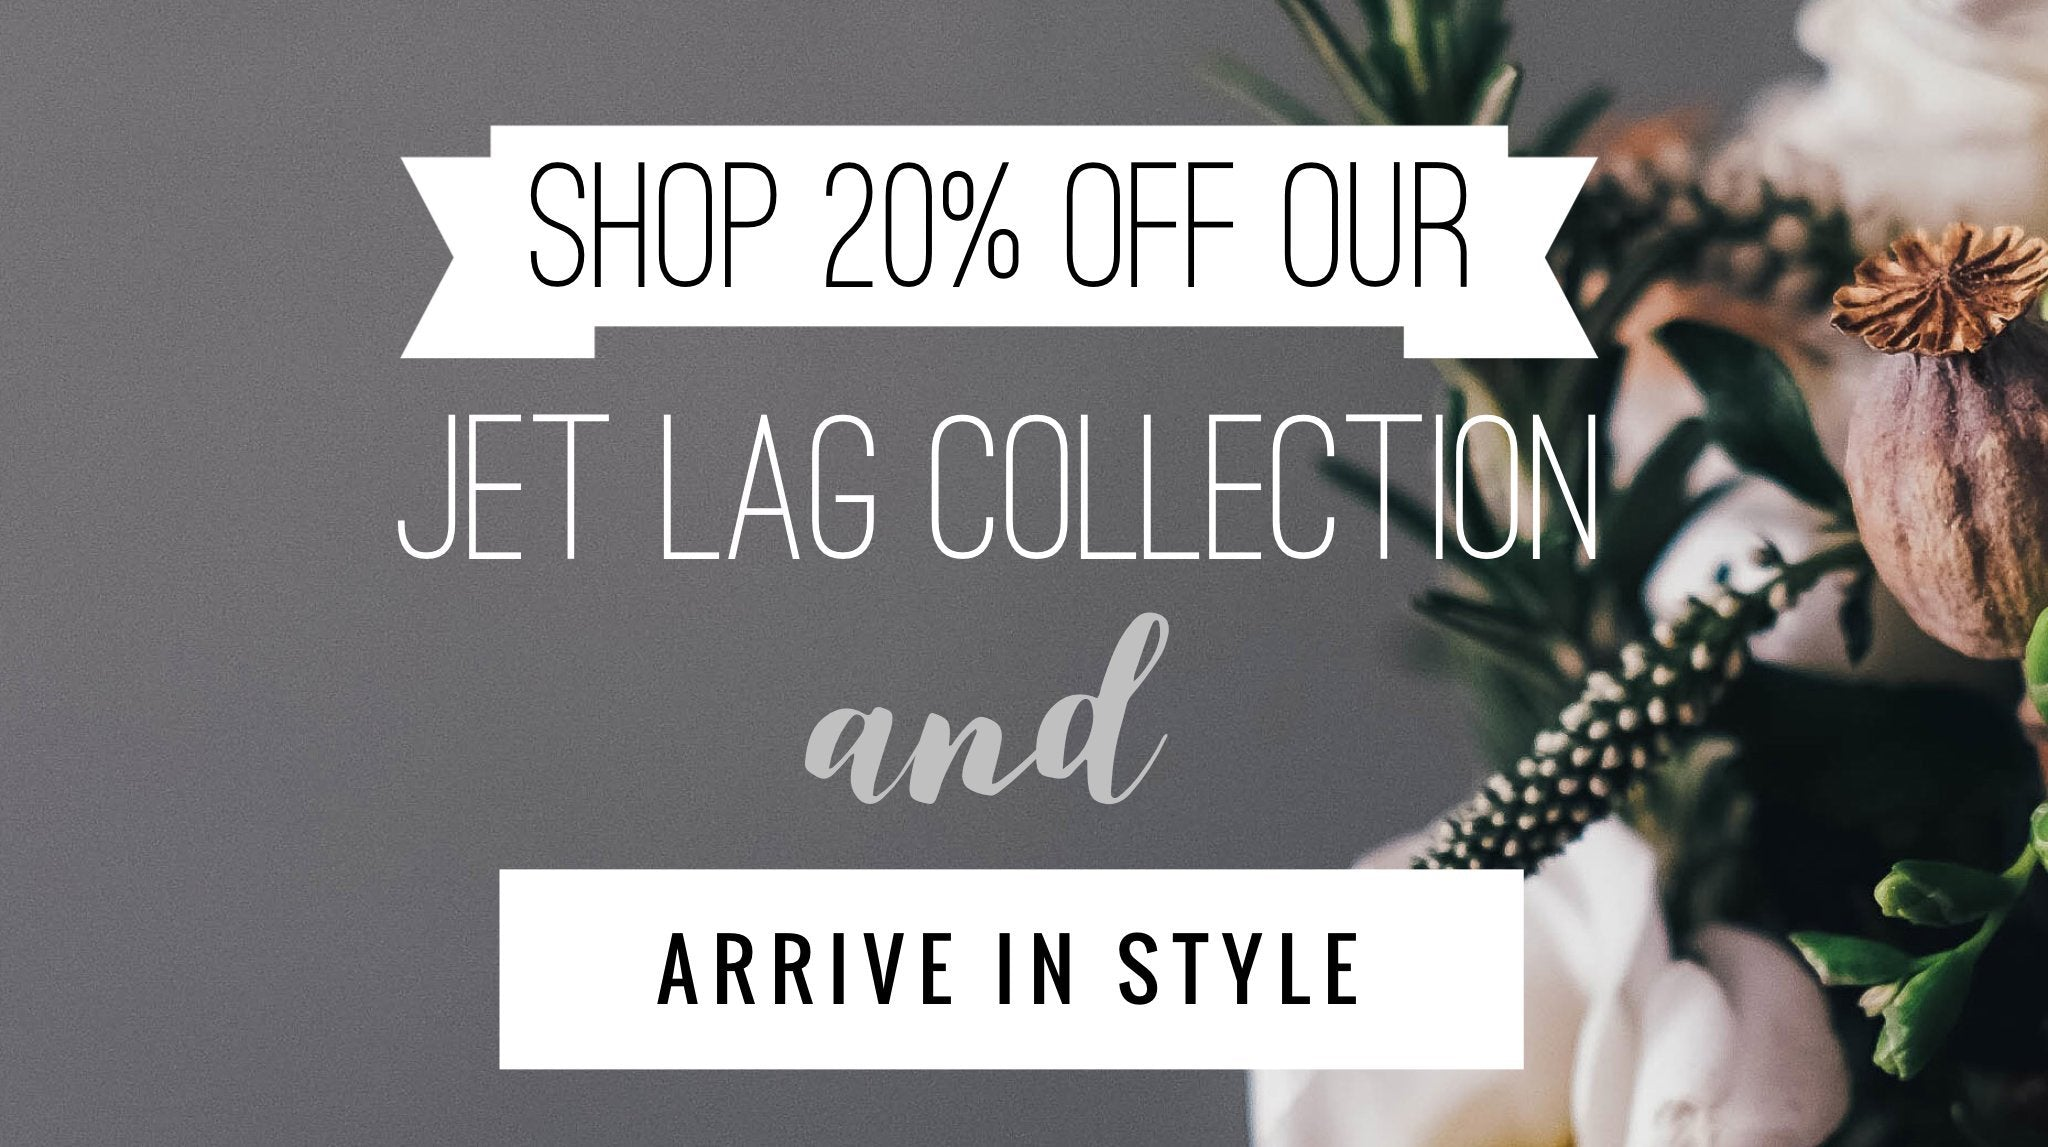 20% OFF OUR Jet Lag Collection